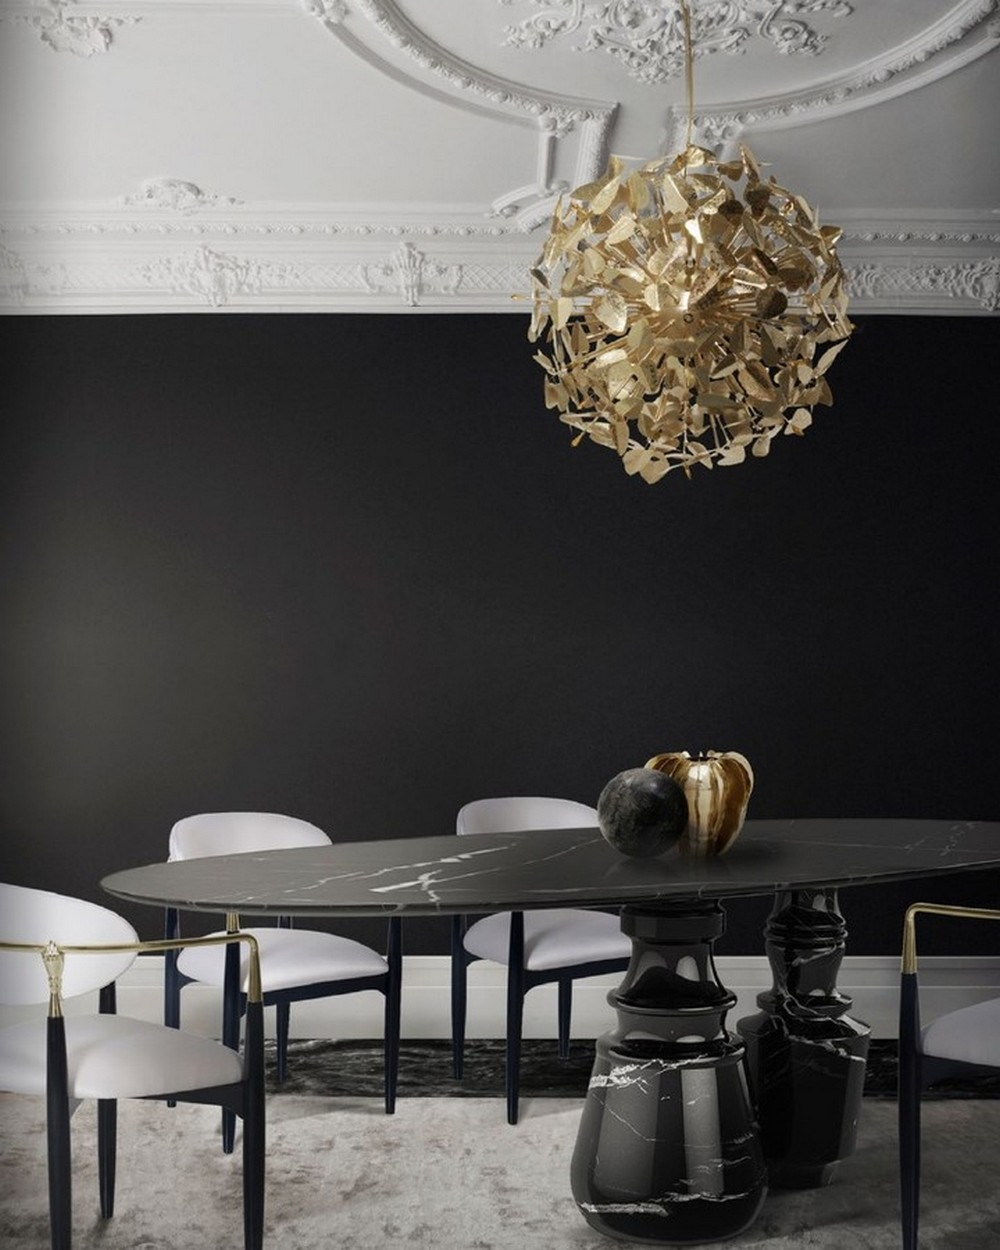 How To Use Black To Create A Thrilling Luxury Dining Room luxury dining room How To Use Black To Create A Thrilling Luxury Dining Room 154729127 227716625740995 2224958982904527563 n